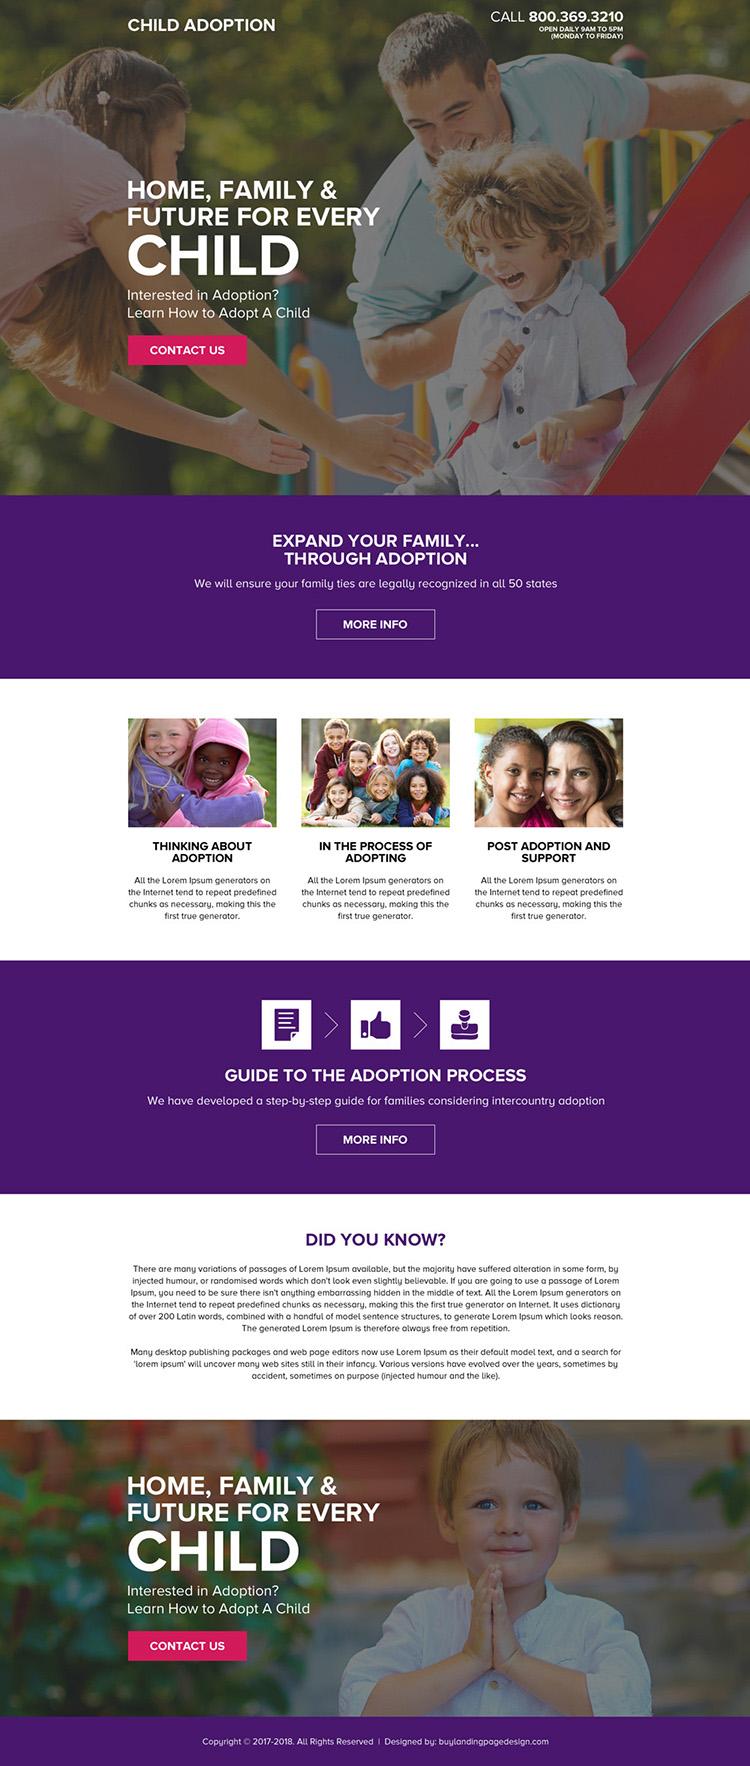 child adoption email and phone call lead capturing landing page